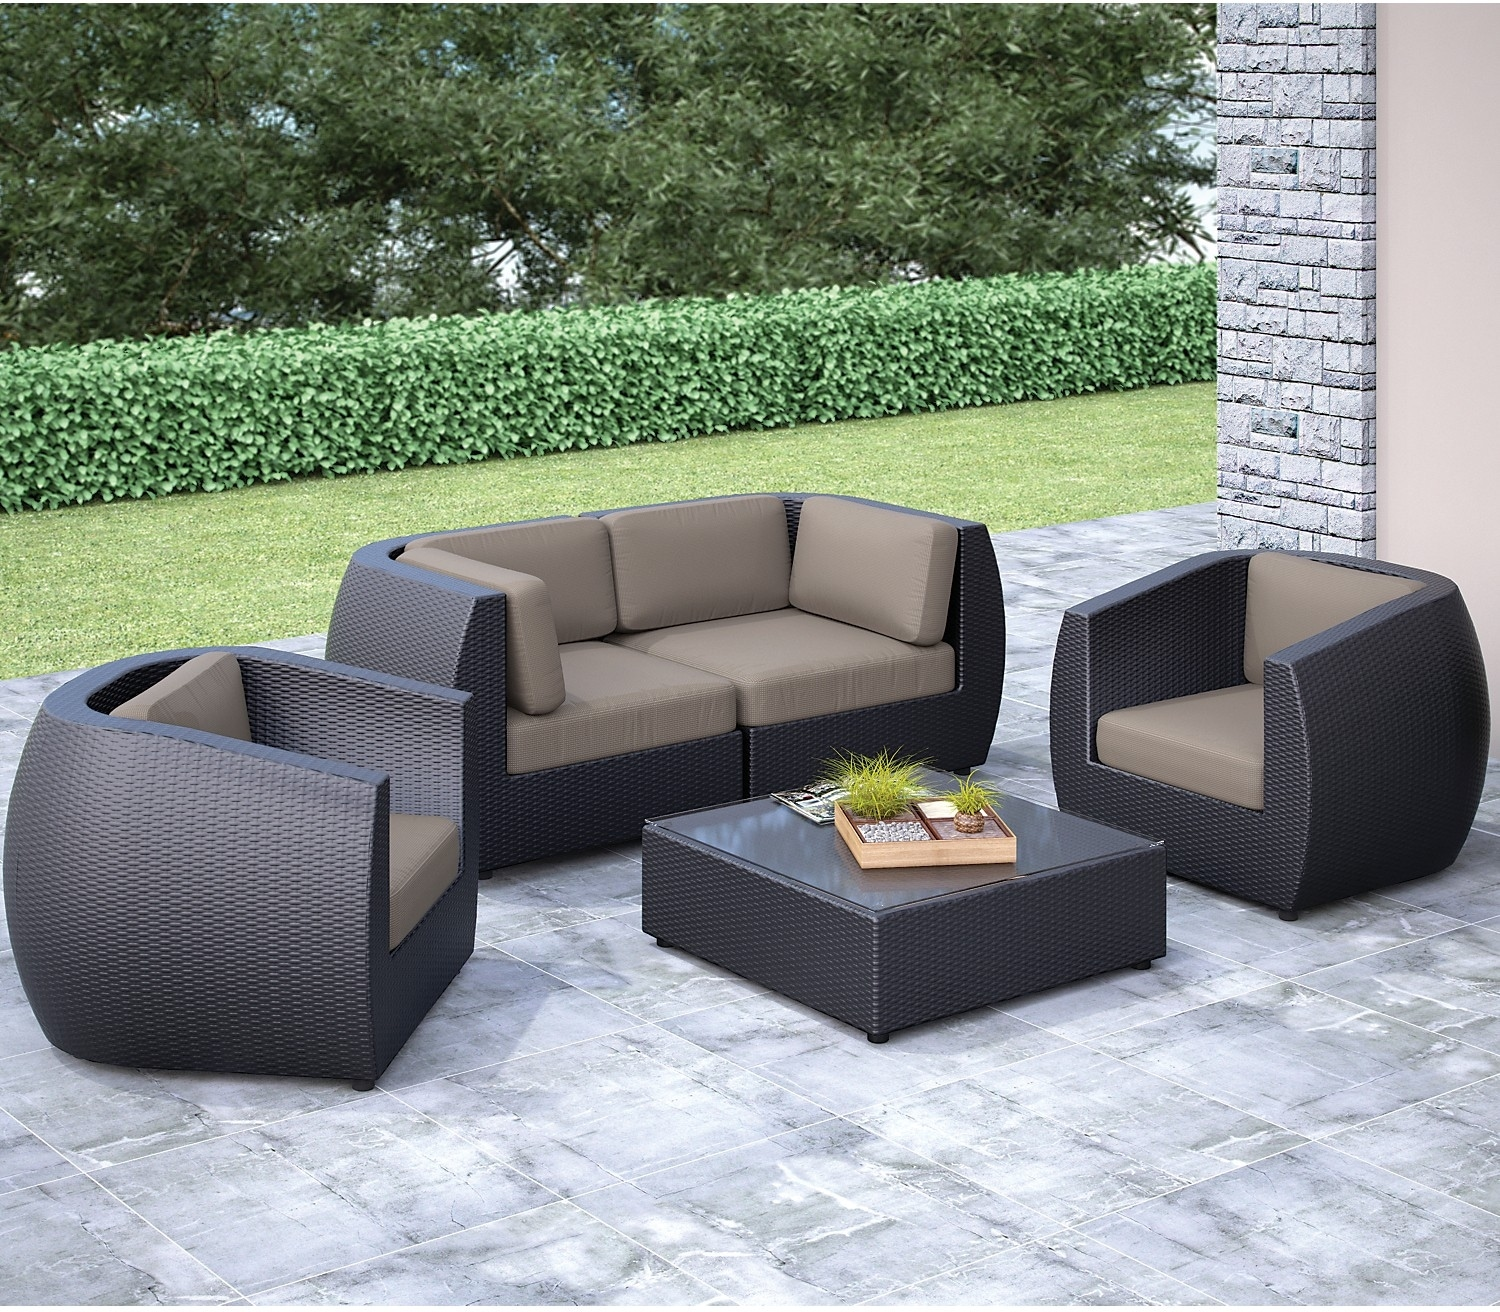 Outdoor Furniture - Seattle Conversation Patio Set - Loveseat